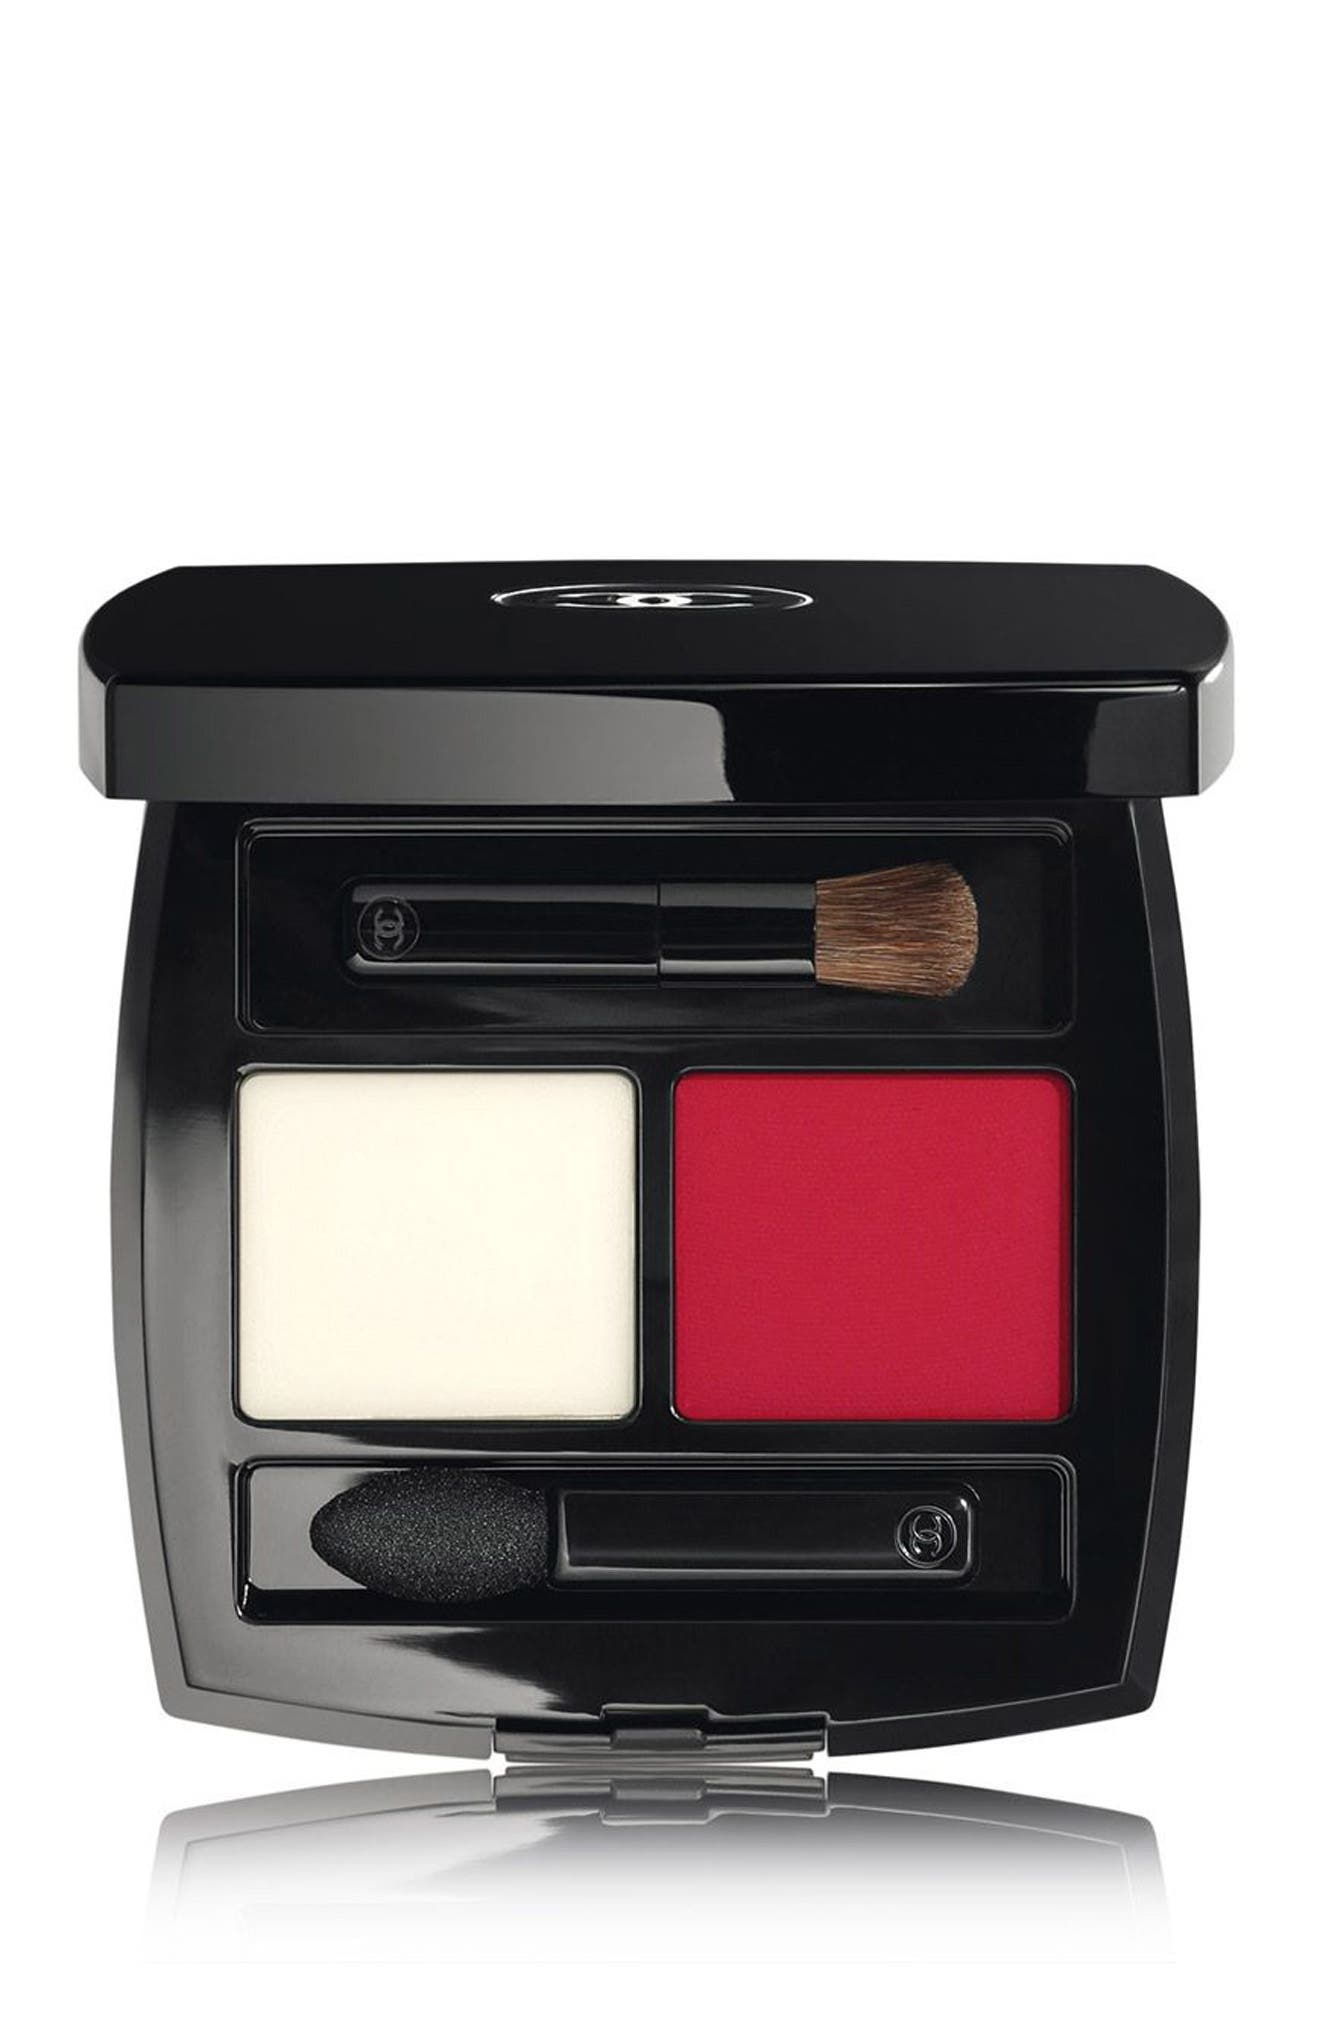 POUDRE LEVRES<br />Lip Balm and Powder Duo,                         Main,                         color, 415 Rosso Parthenope